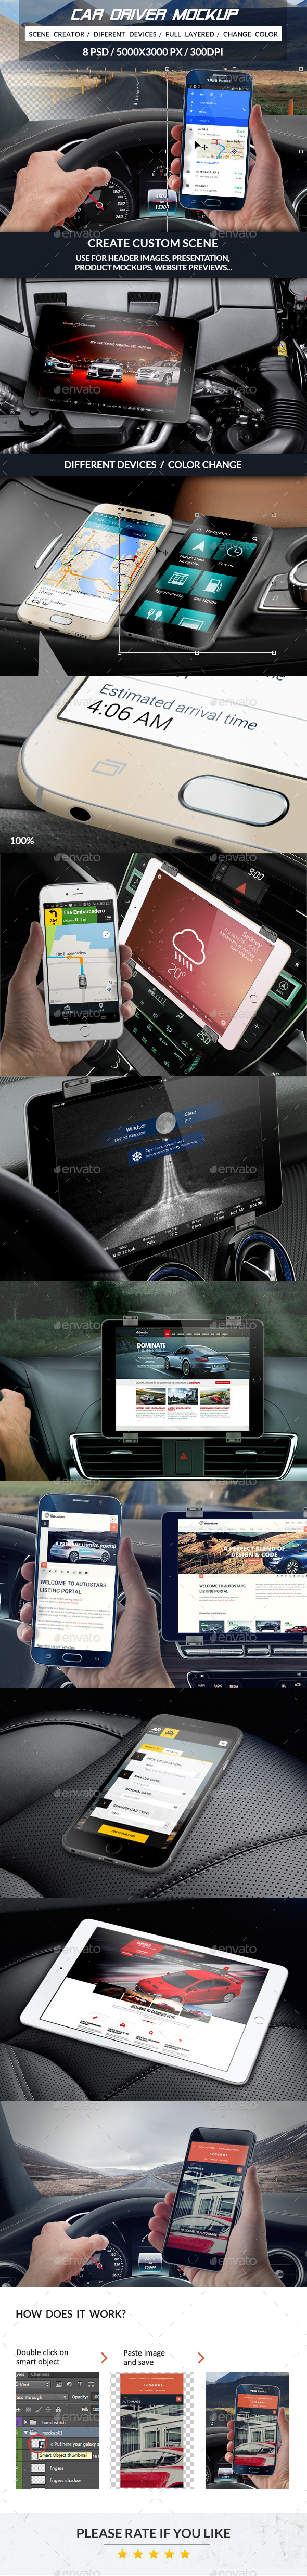 Car Driver Mockup - Mobile Displays